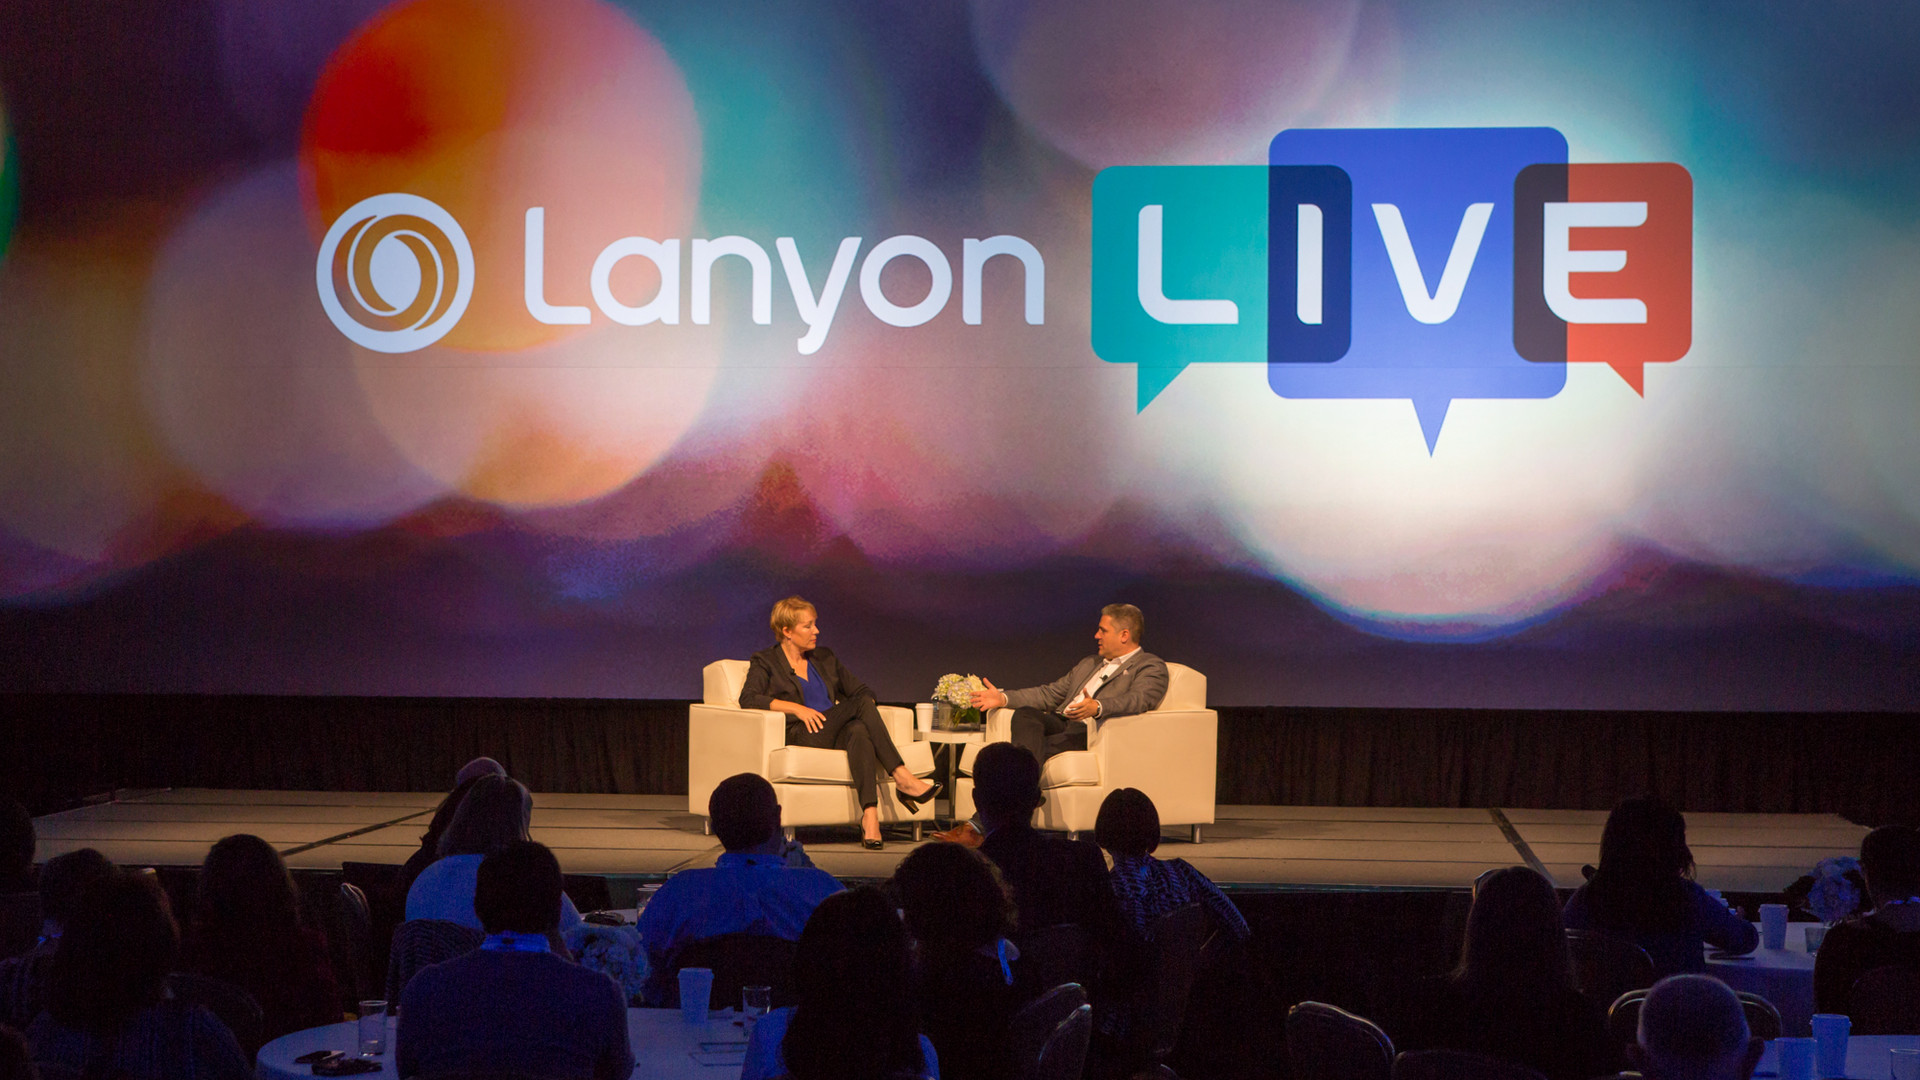 Shark tank interview at Lanyon Live Conference